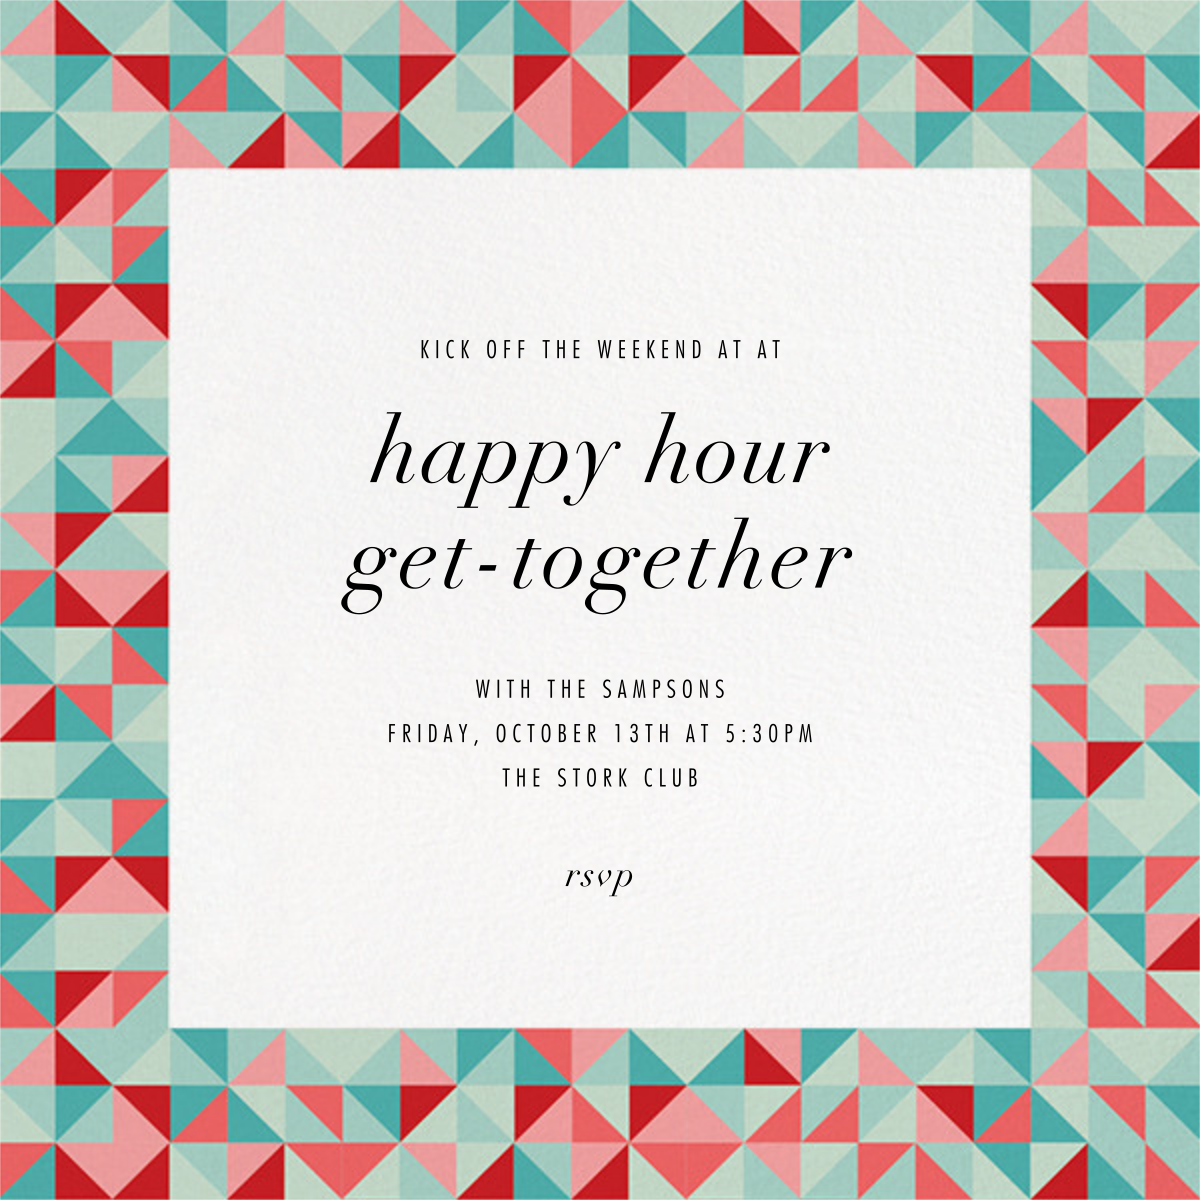 Quilt Block - Paperless Post - Happy hour